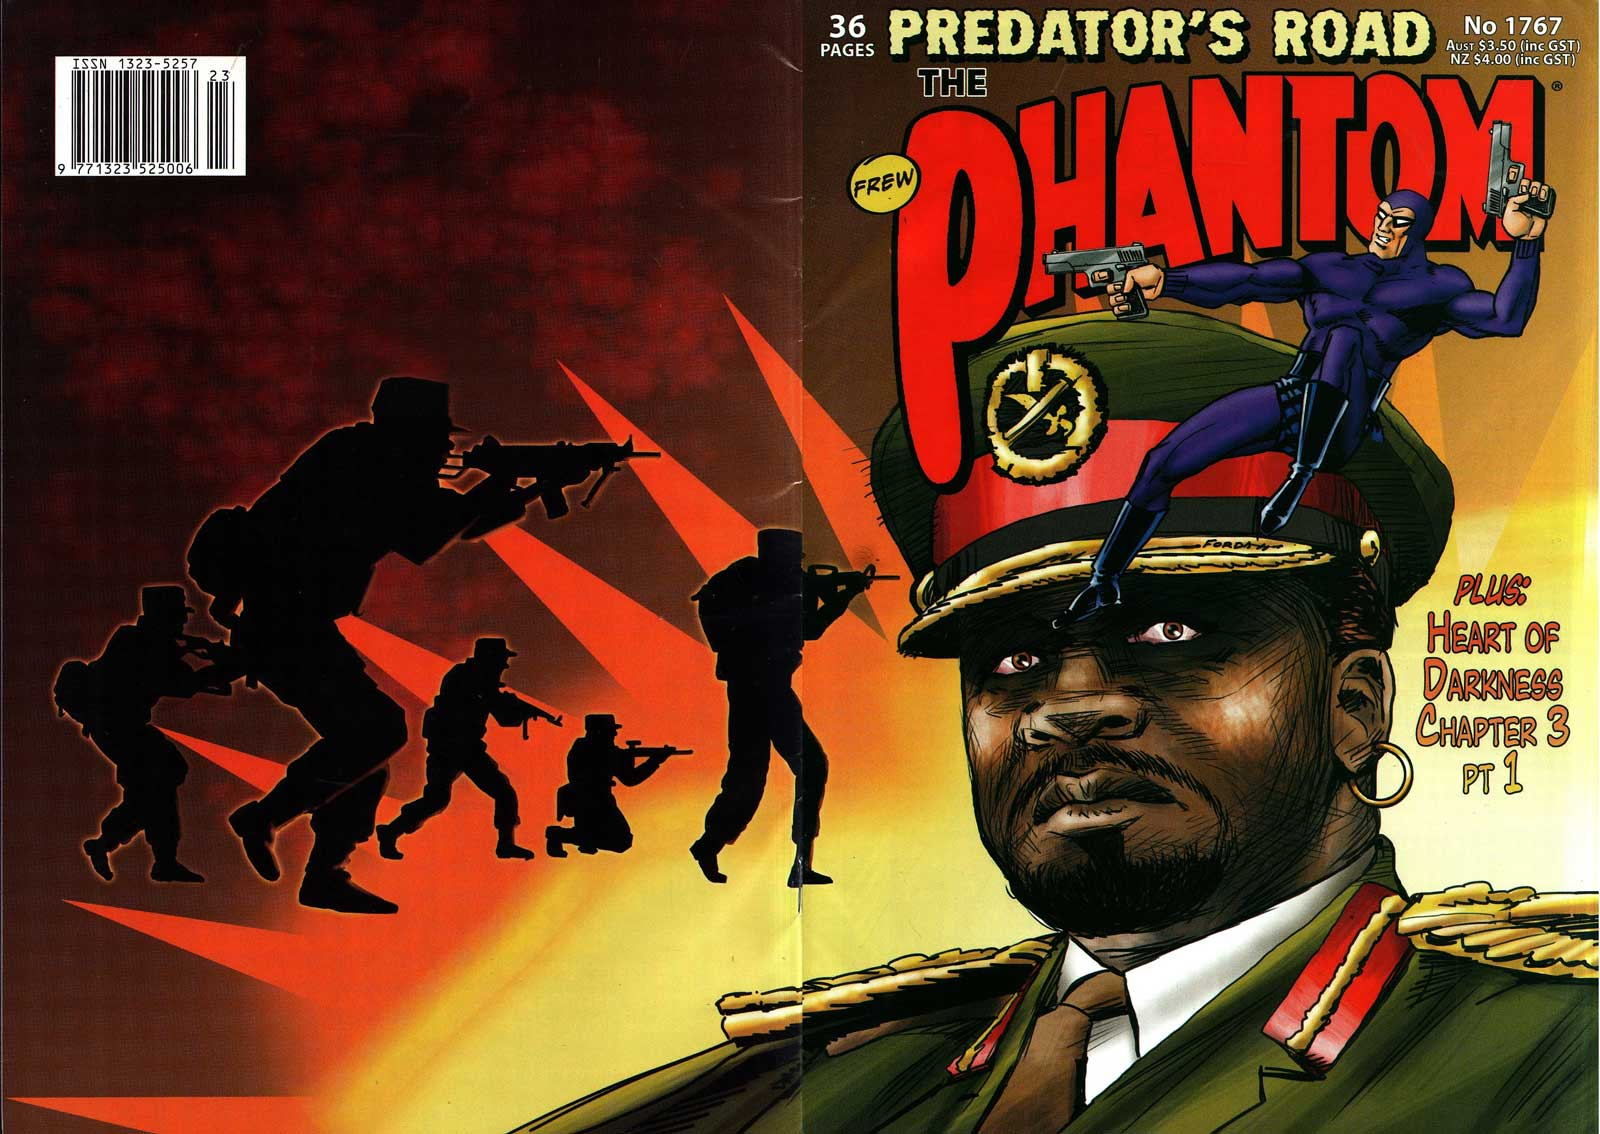 The Phantom 1767 - Predator's Road (Frew Comics)